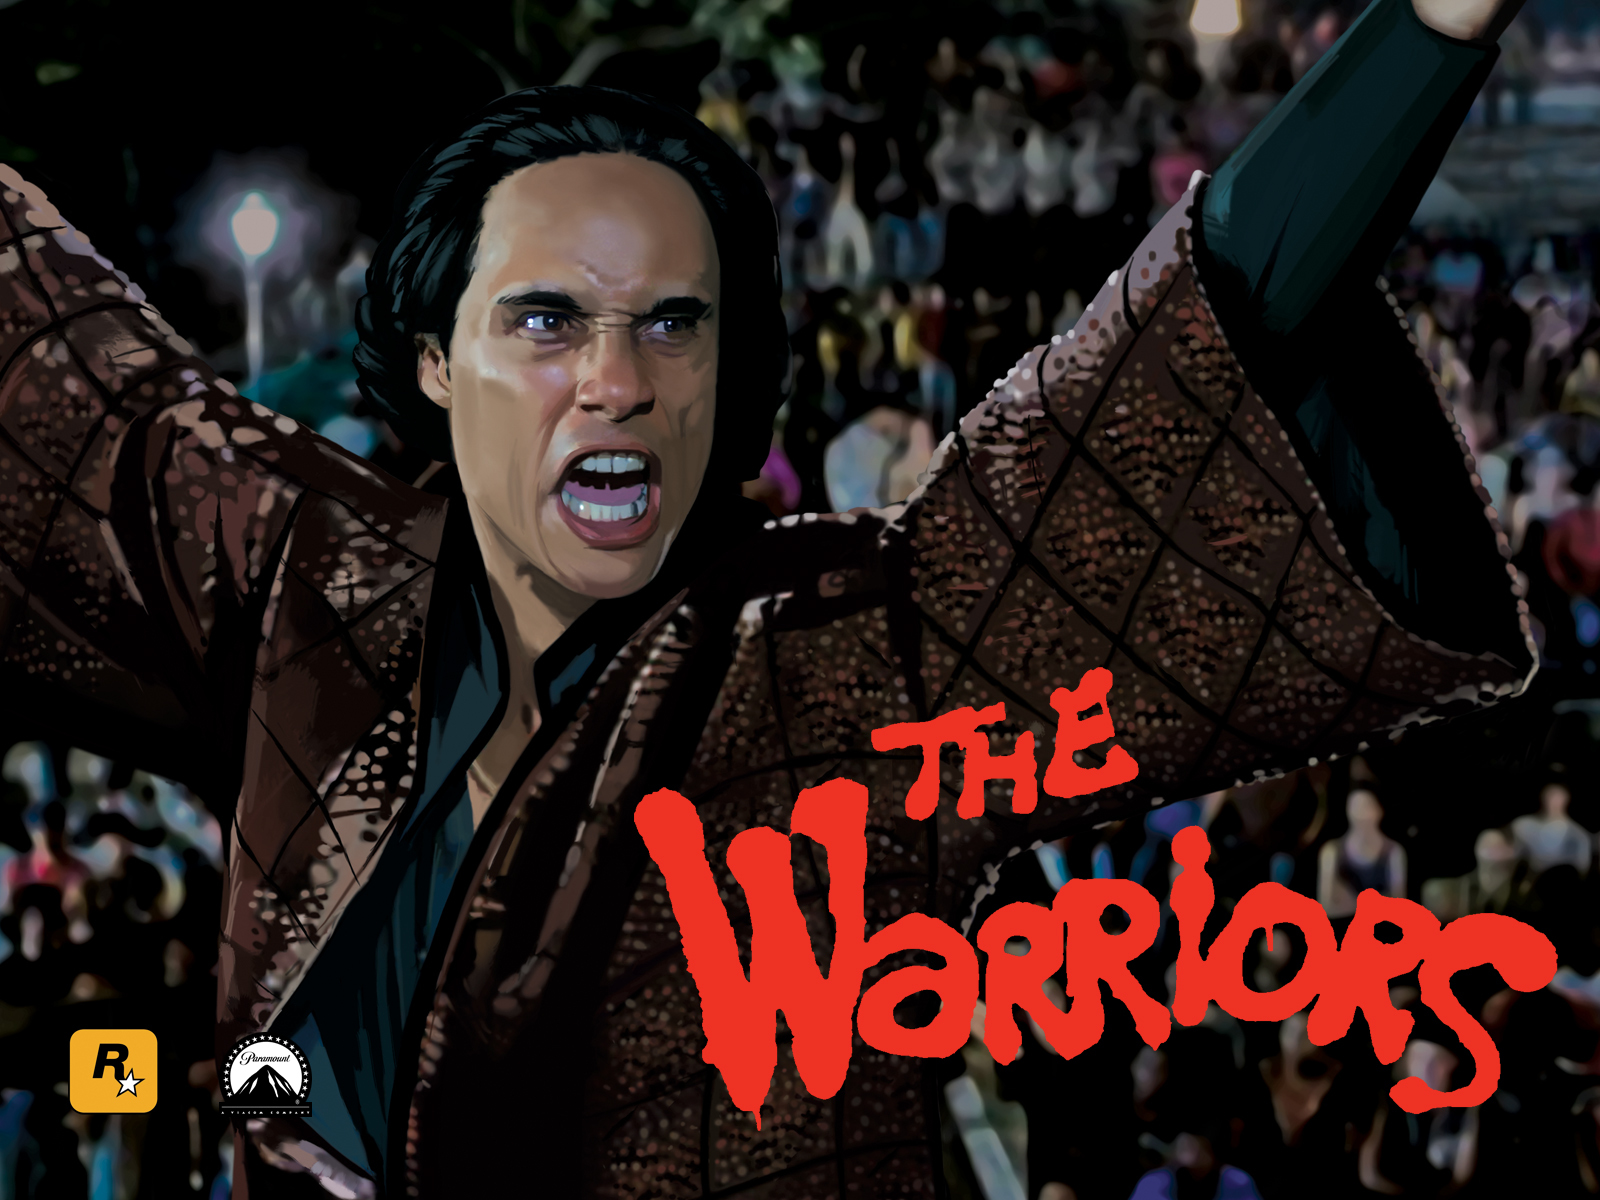 Warriors Movies Movie HD Wallpaper